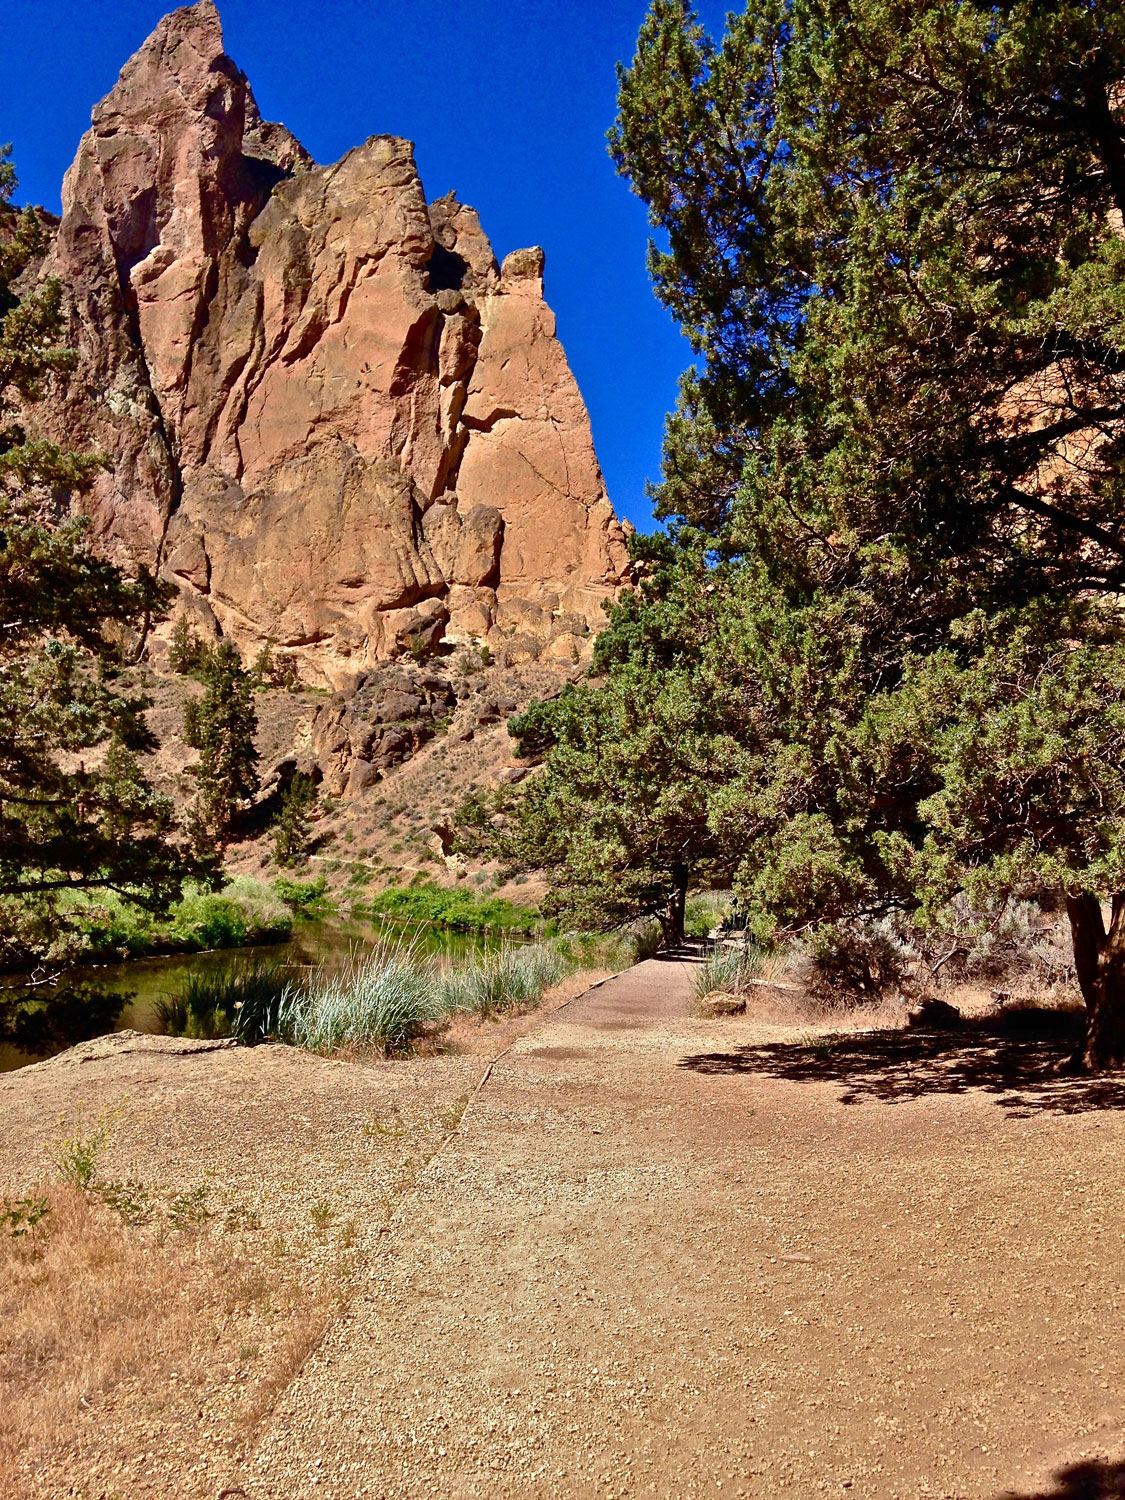 The River Trail path takes you past the big walls and major climbing areas at Smith Rock State Park.